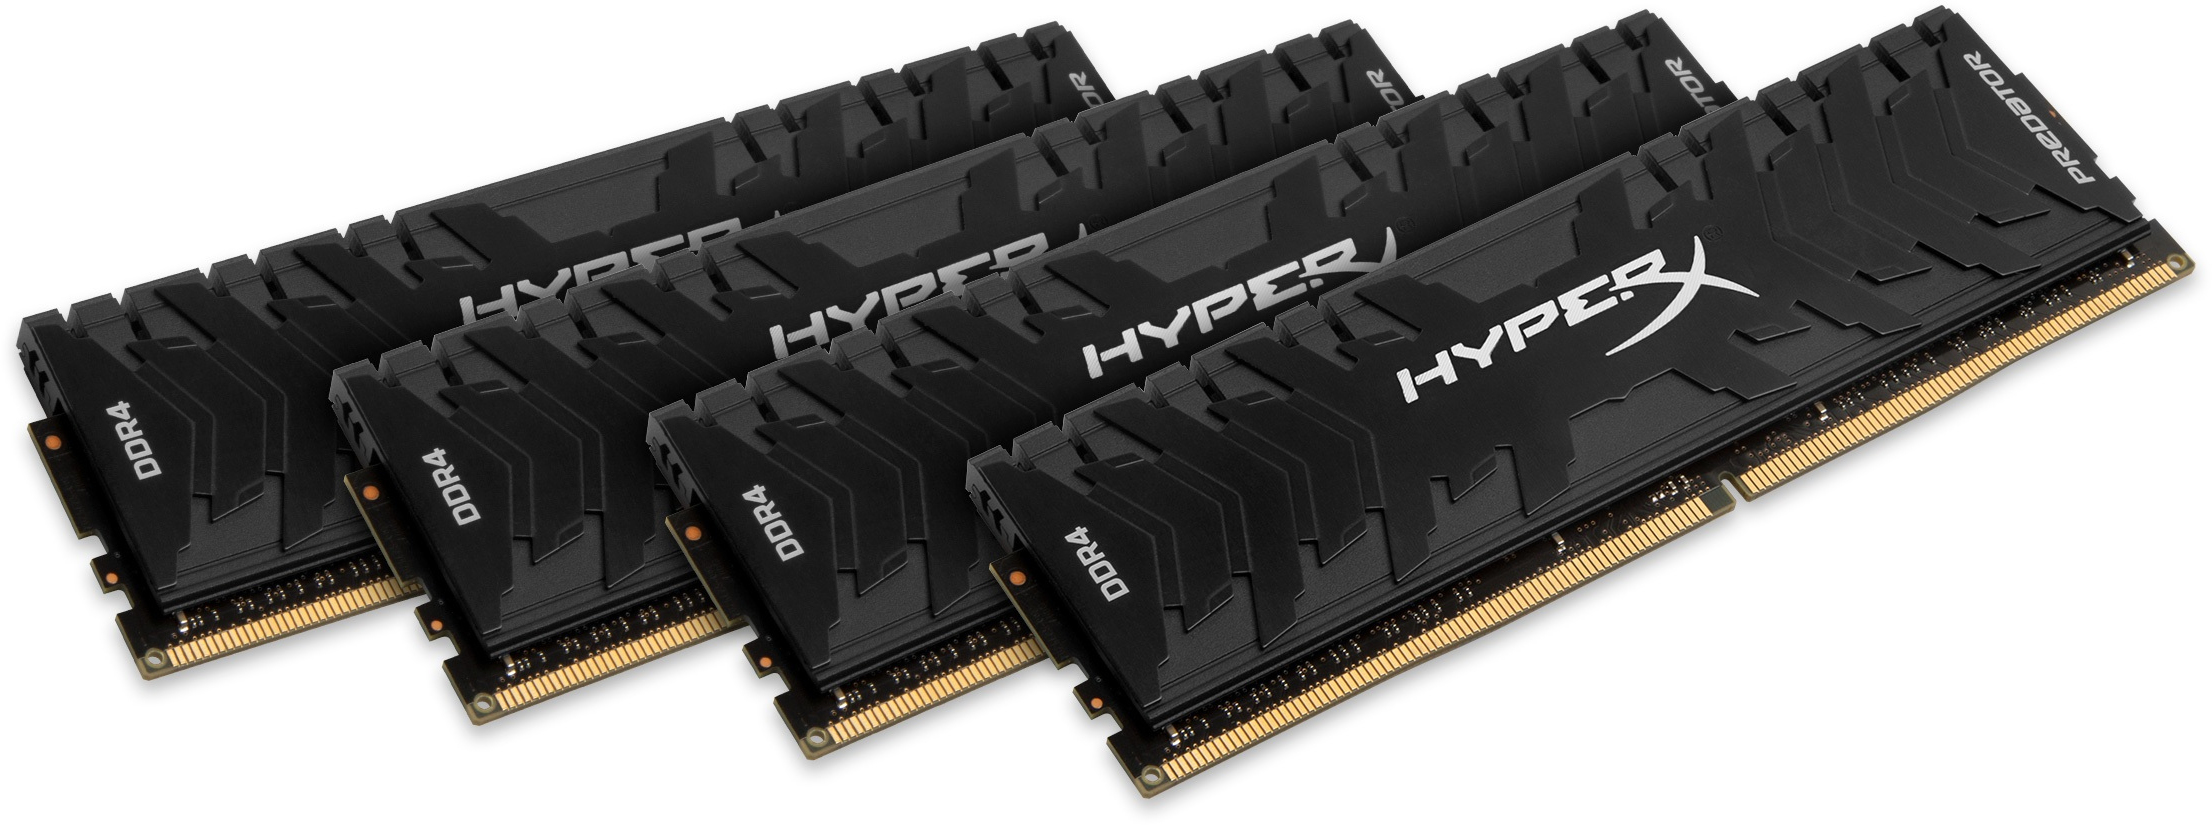 Kingston HyperX Predator DDR4 32GB Kit 4×8 3200MHz